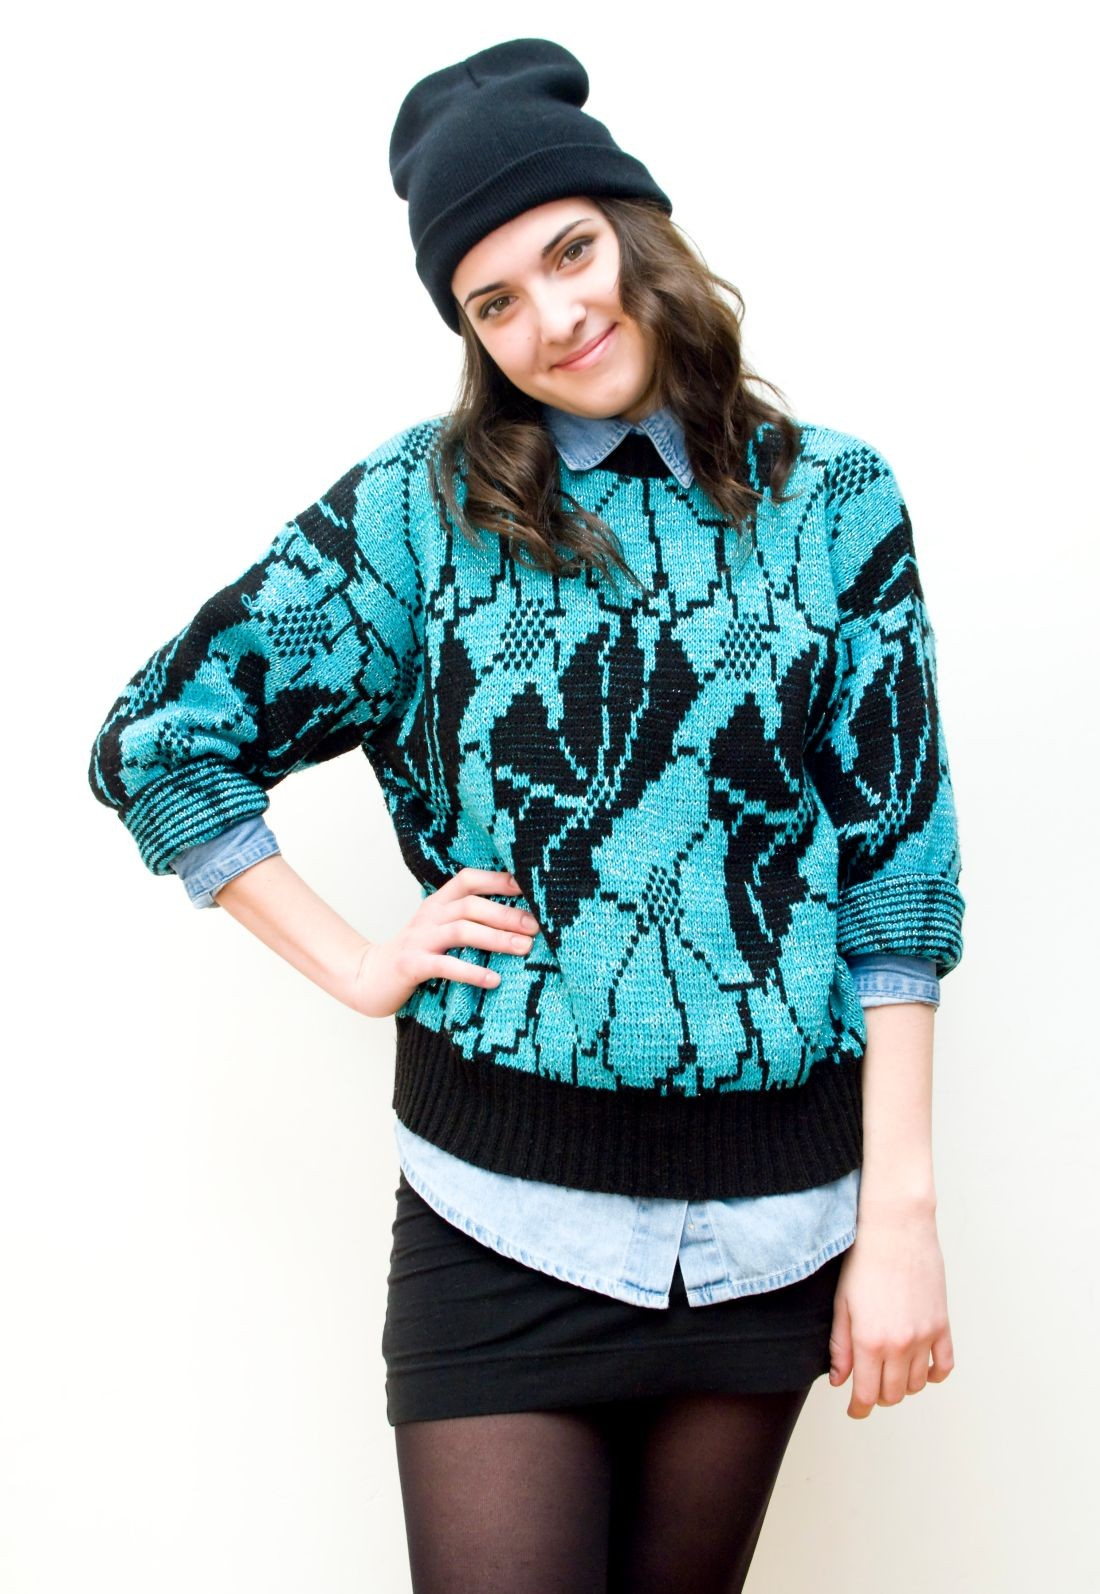 Sweater with turquoise flowers - Pop Sick Vintage